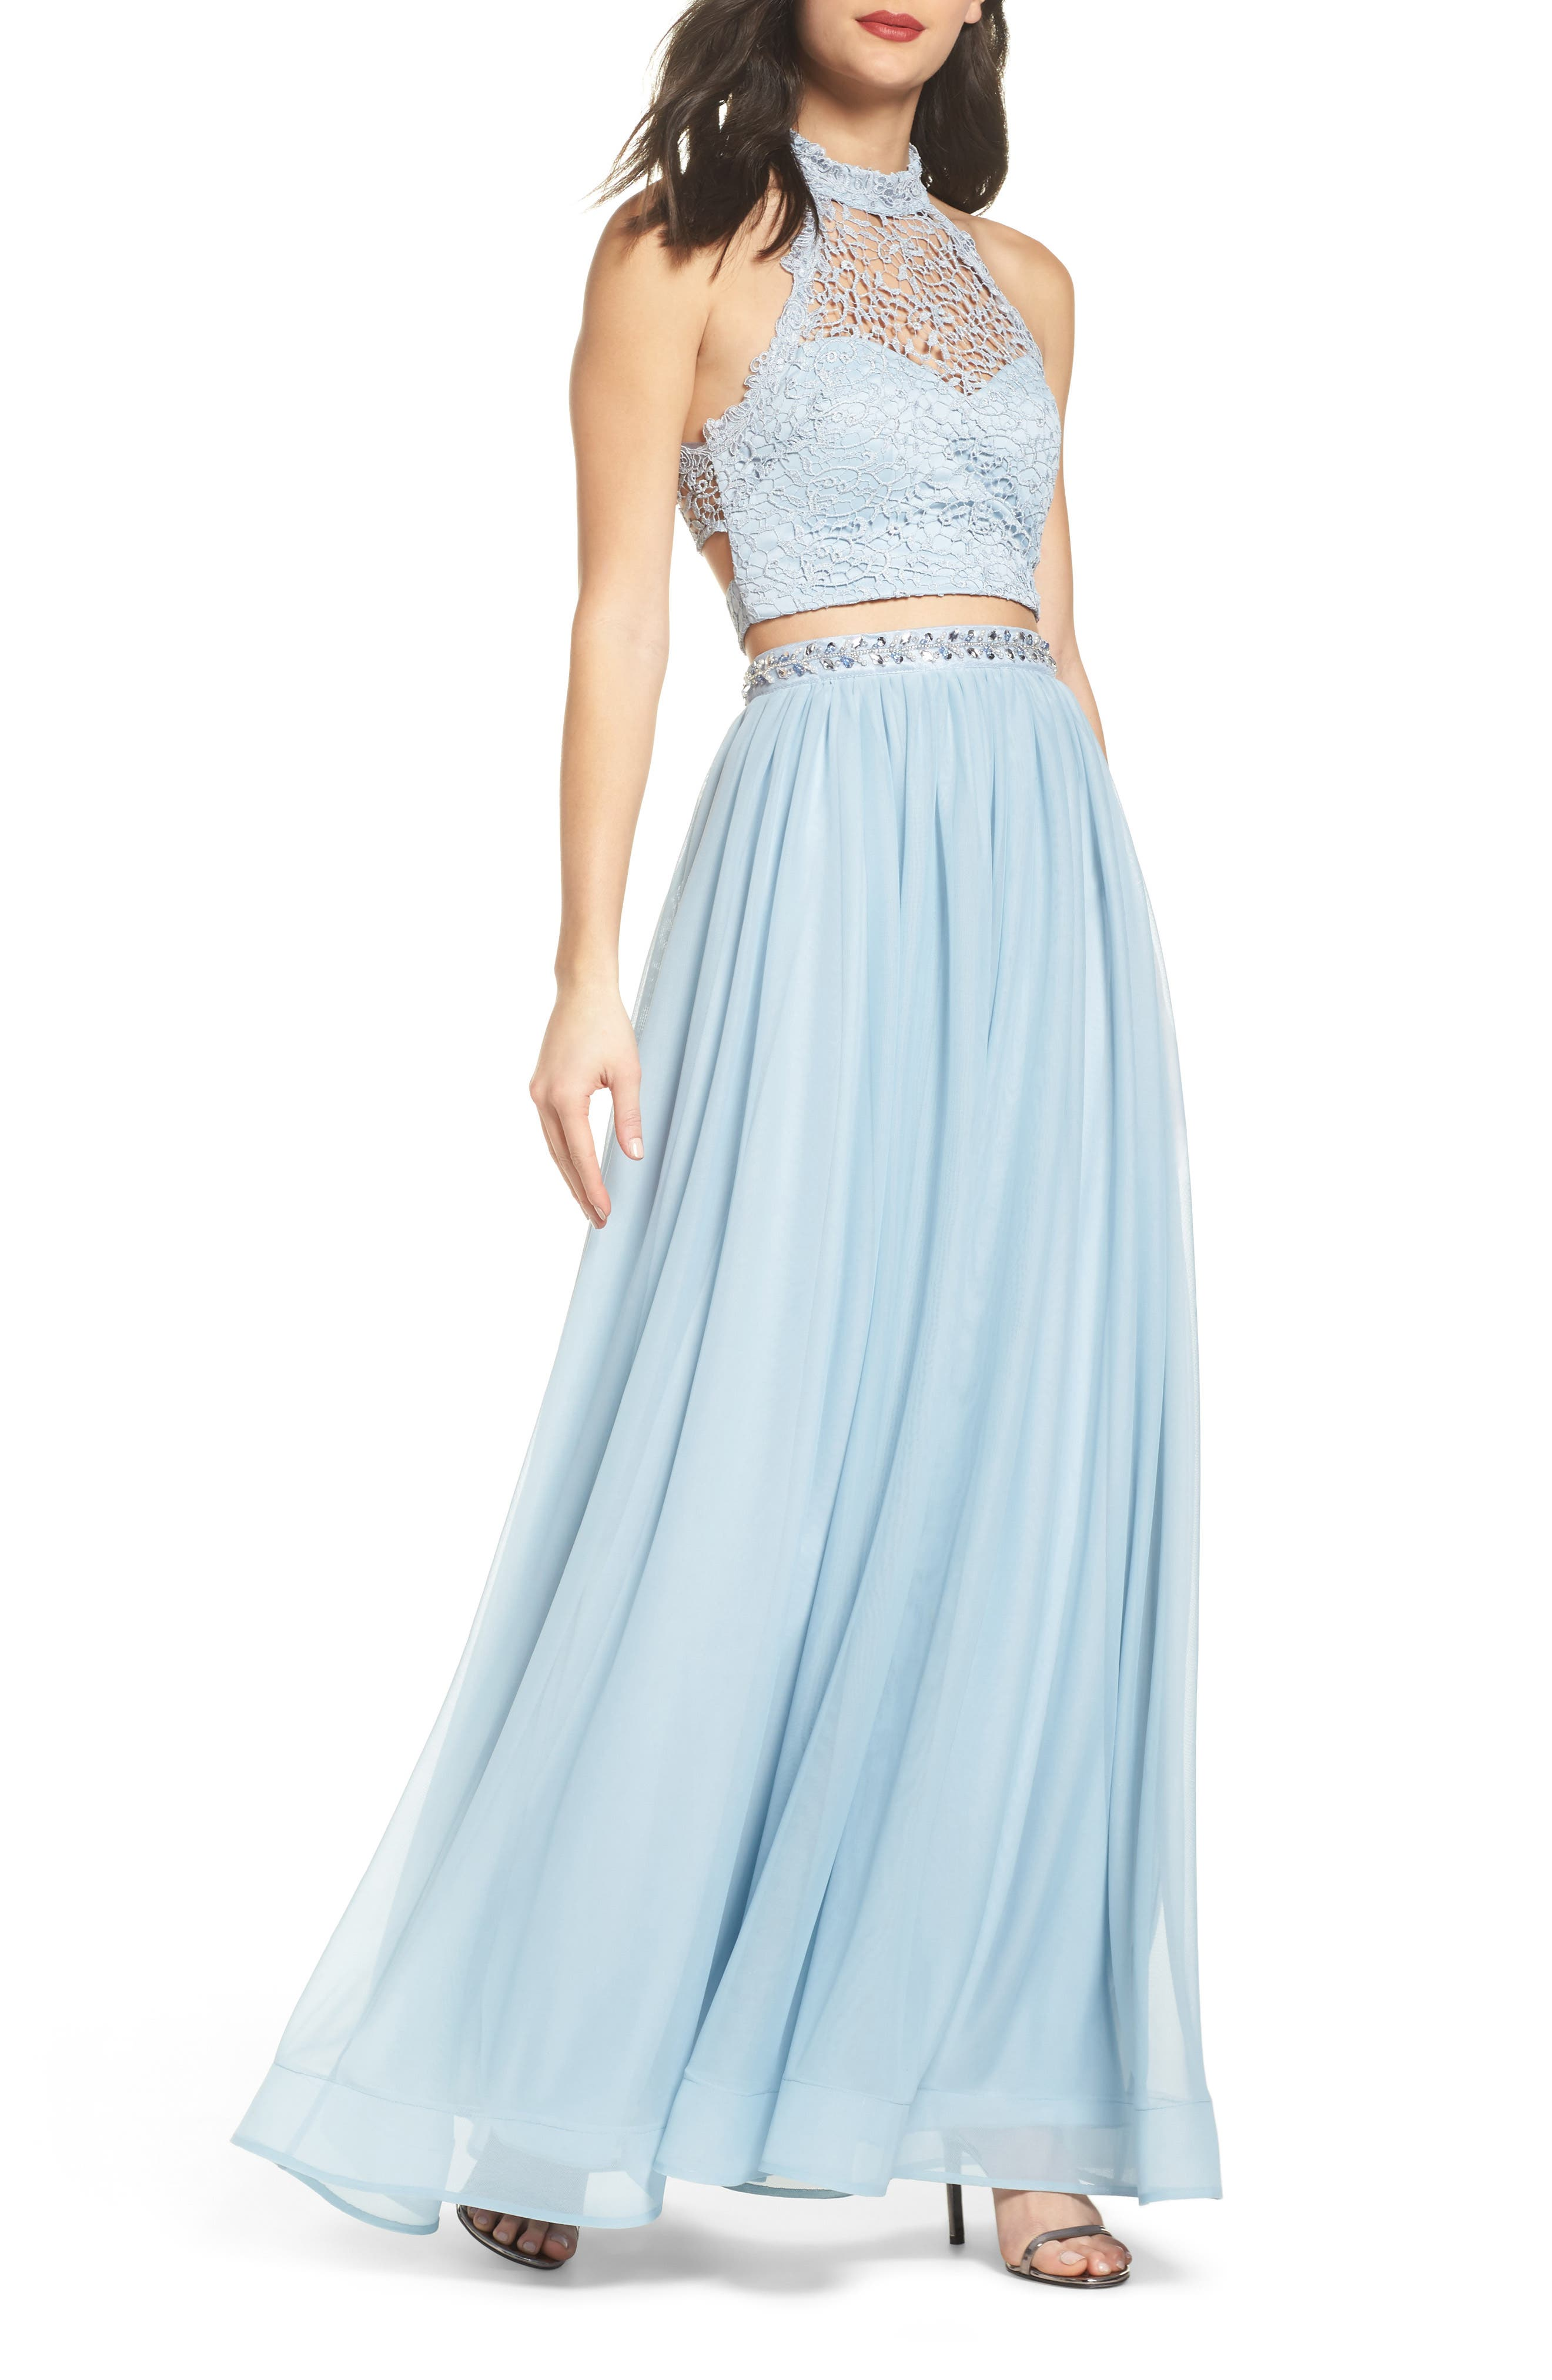 Alternate Image 1 Selected - Sequin Hearts Chemical Lace Two-Piece Halter Gown